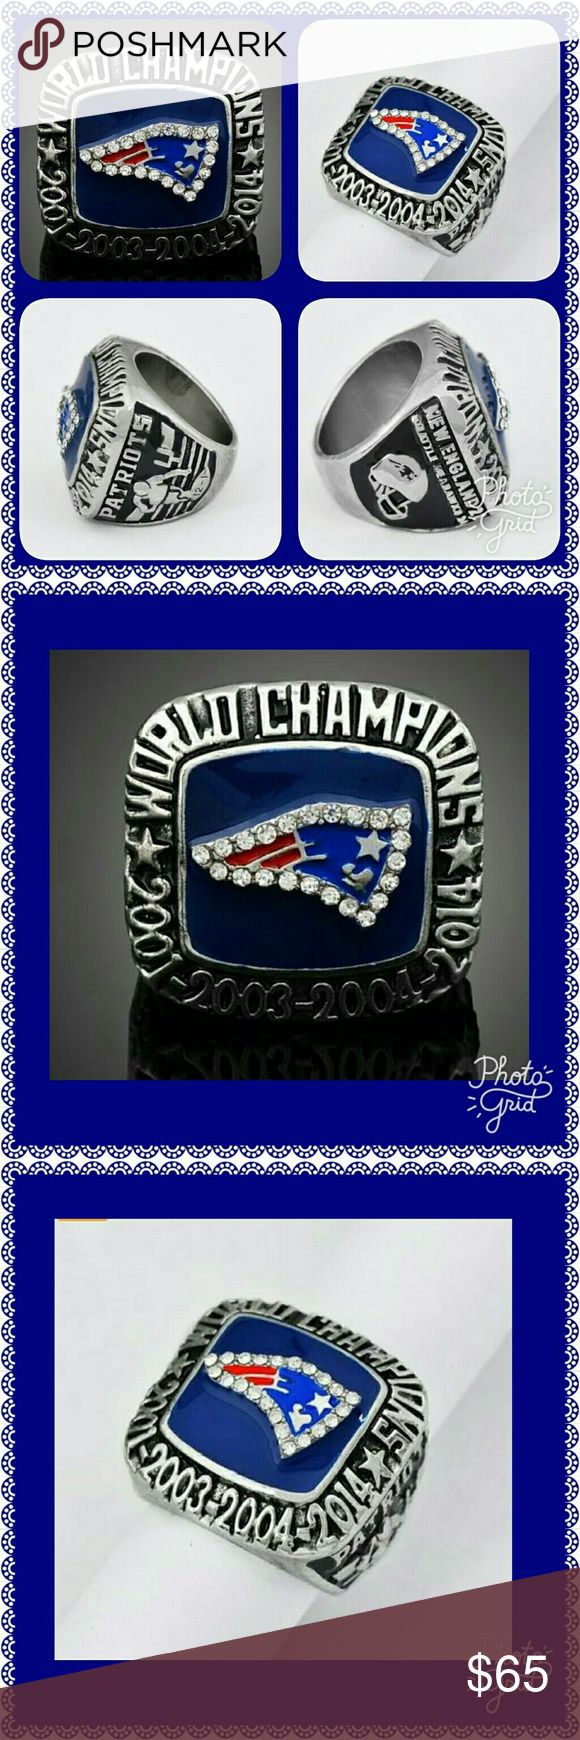 """🆕 🏈 NFL SUPER BOWL RING 🏈 🏈 2014 NEW ENGLAND """" PATRIOTS """" SUPER BOWL CHAMPIONSHIP RING. 🏈.   FASHION AND ENVIRONMENT HIGH QUALITY JEWELRY. 🏈 Accessories Jewelry"""